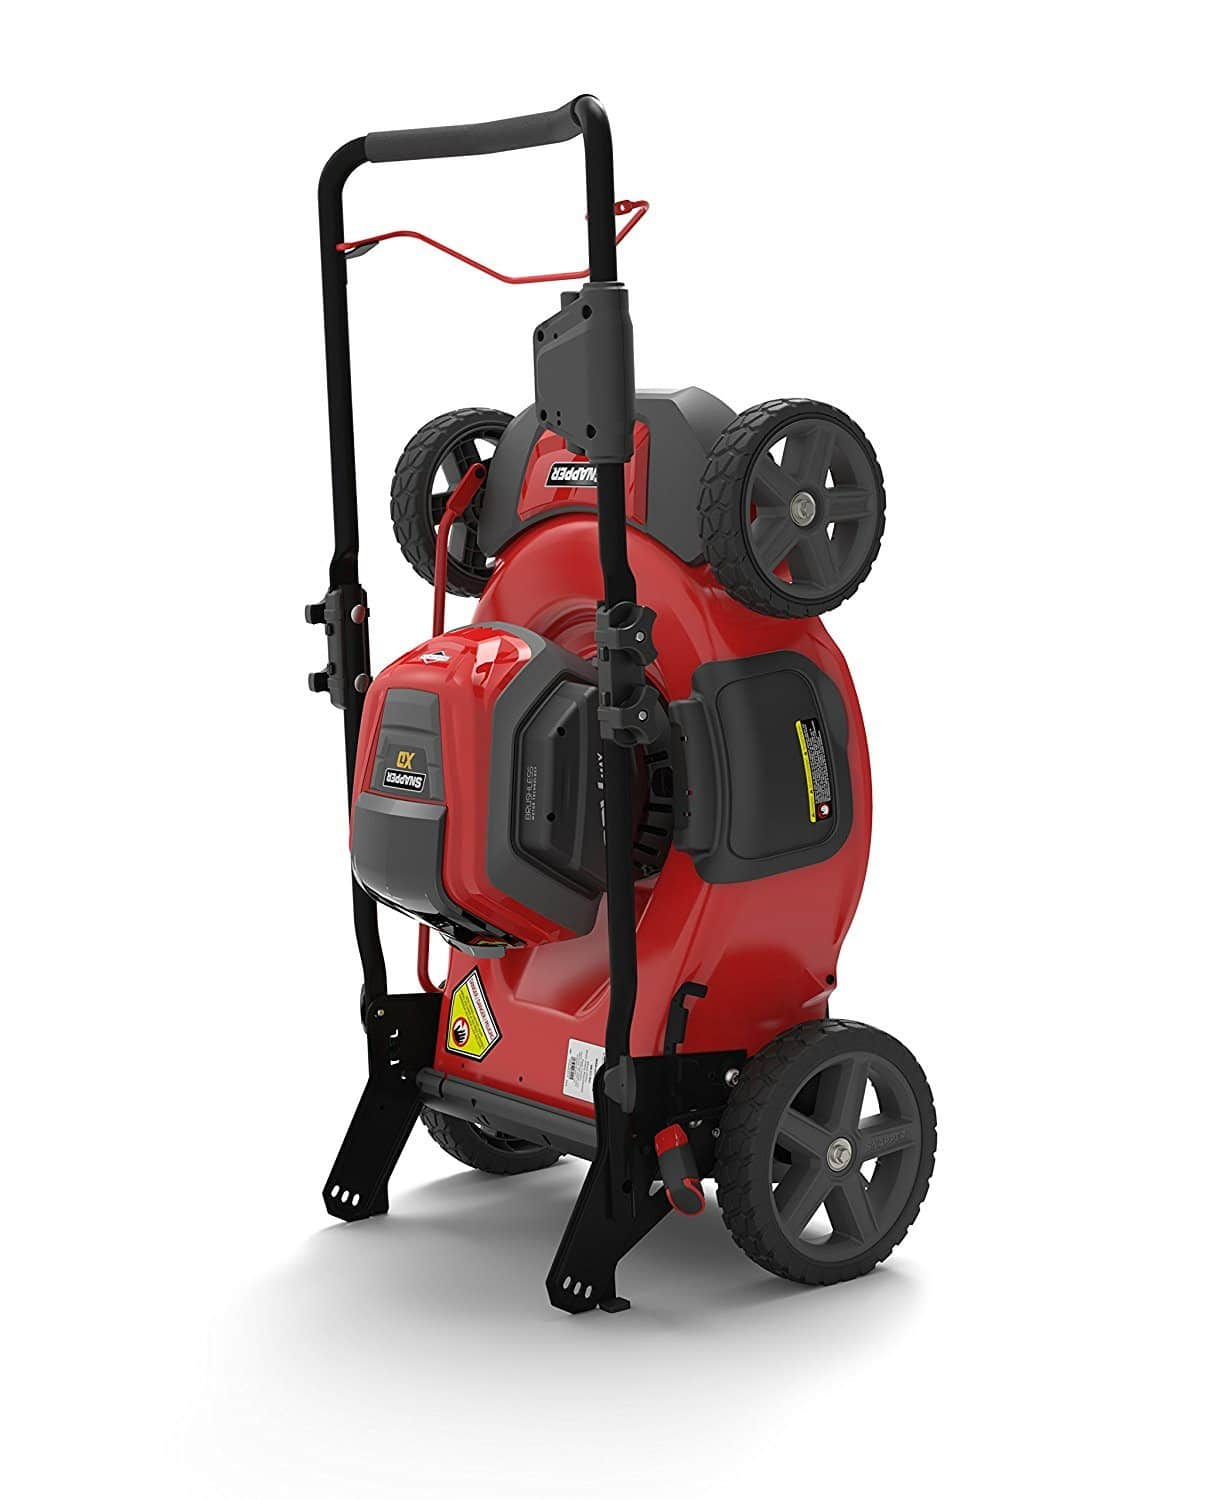 The Best Battery Powered Lawn Mower for 2019 - YardMasterz com